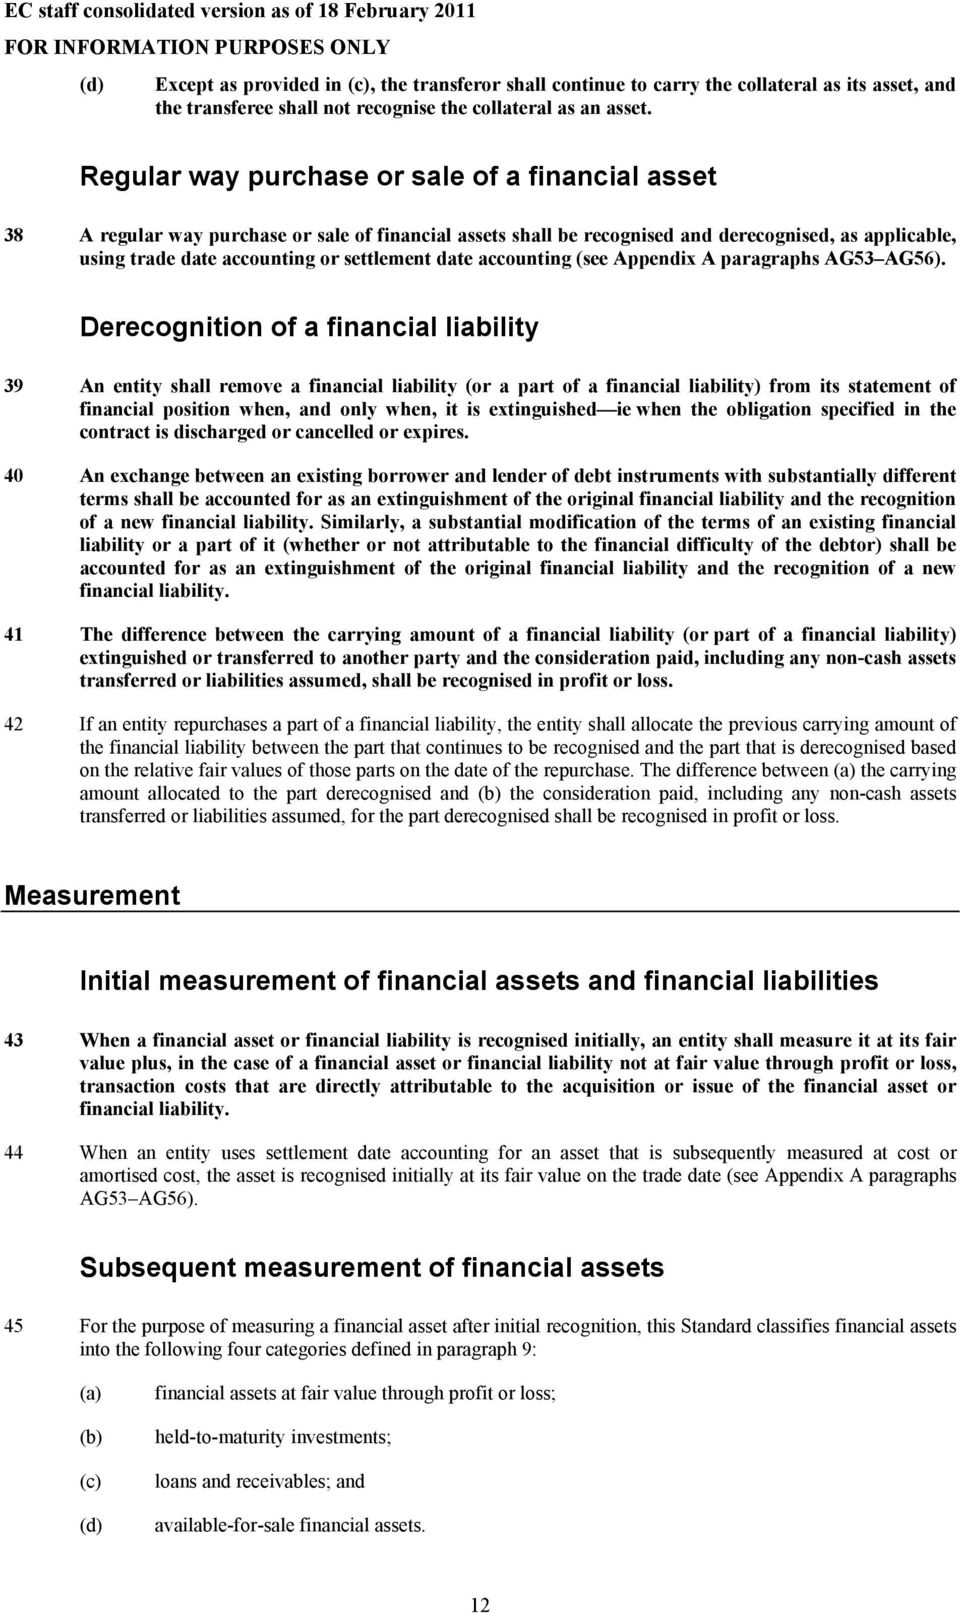 Regular way purchase or sale of a financial asset 38 A regular way purchase or sale of financial assets shall be recognised and derecognised, as applicable, using trade date accounting or settlement